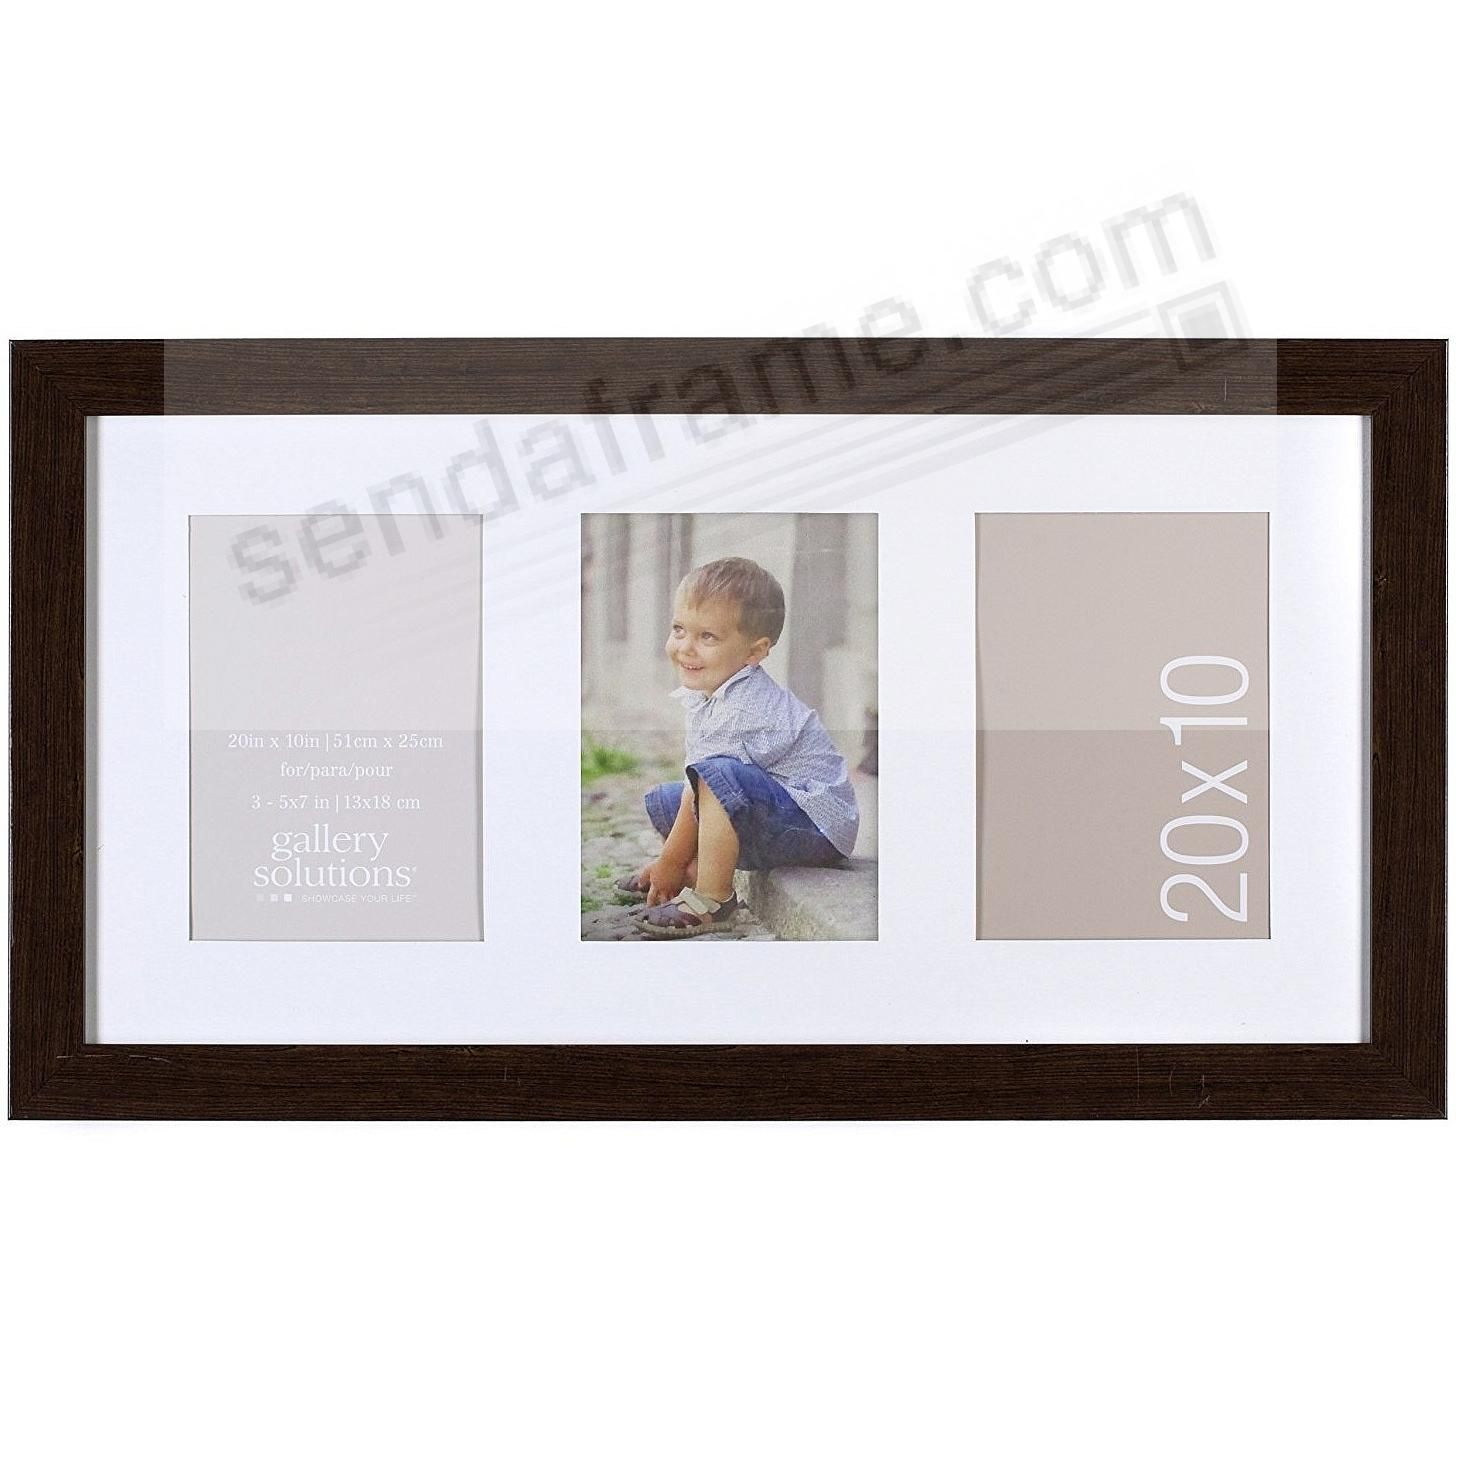 Brown-Ashwood 3-Opening 5x7 Collage Matted frame by Gallery Solutions™